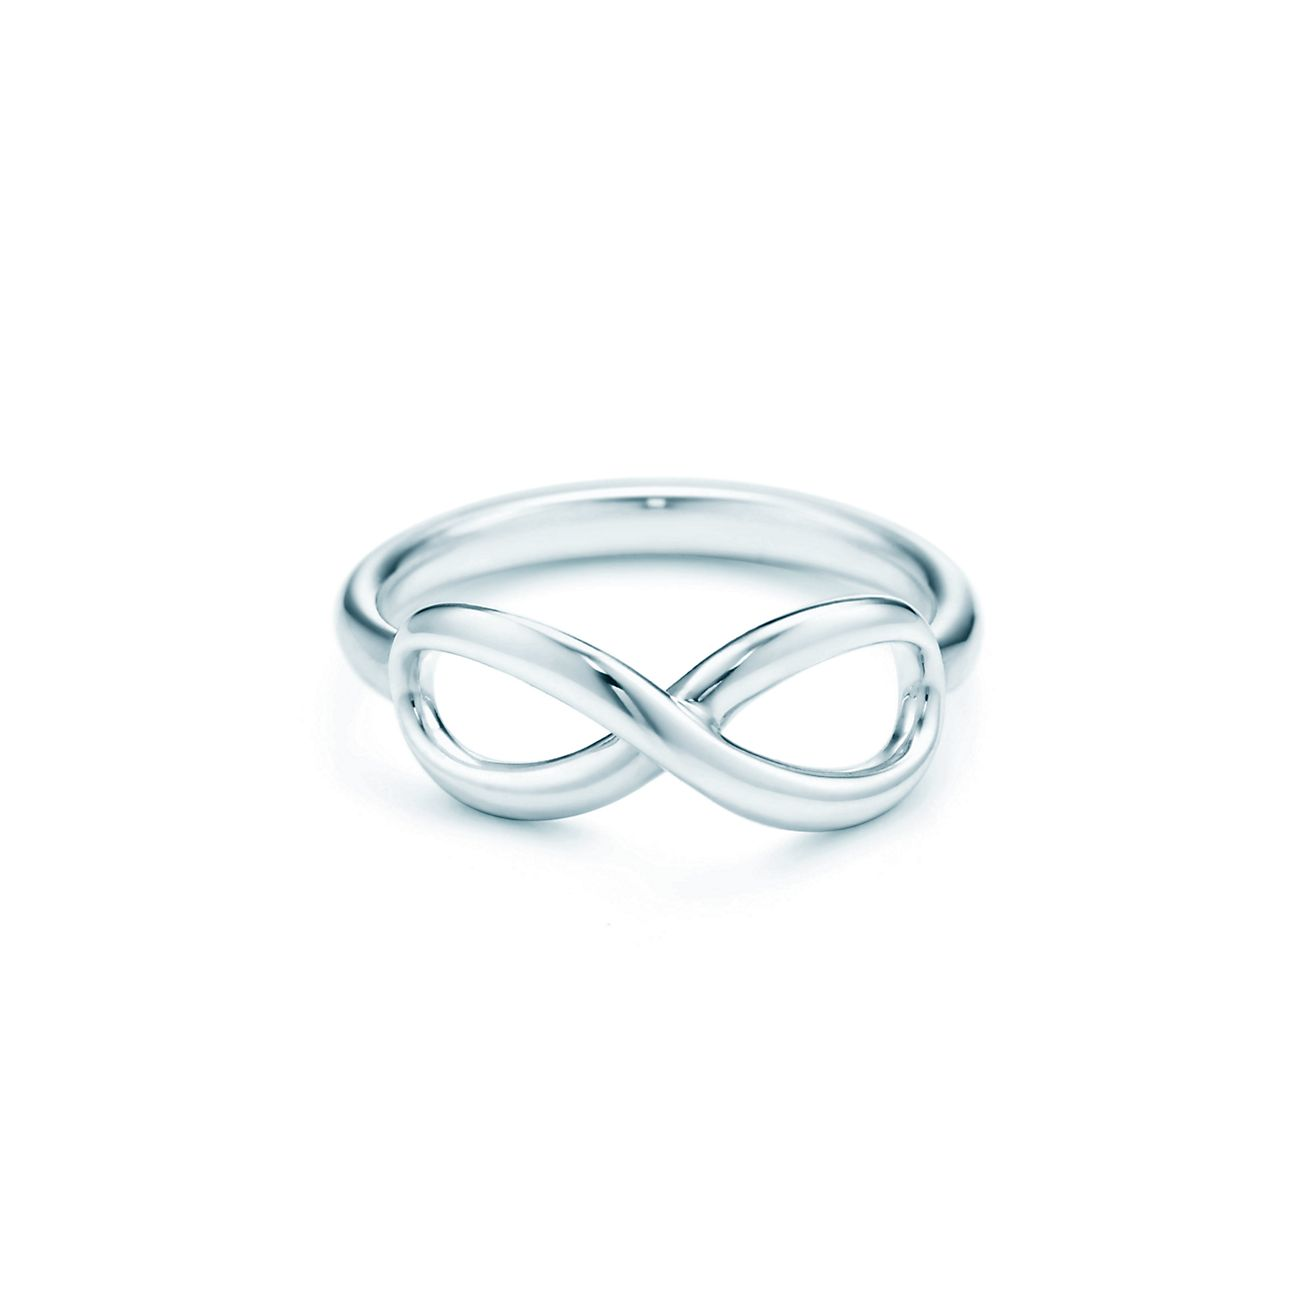 Tiffany Infinity sterling silver ring